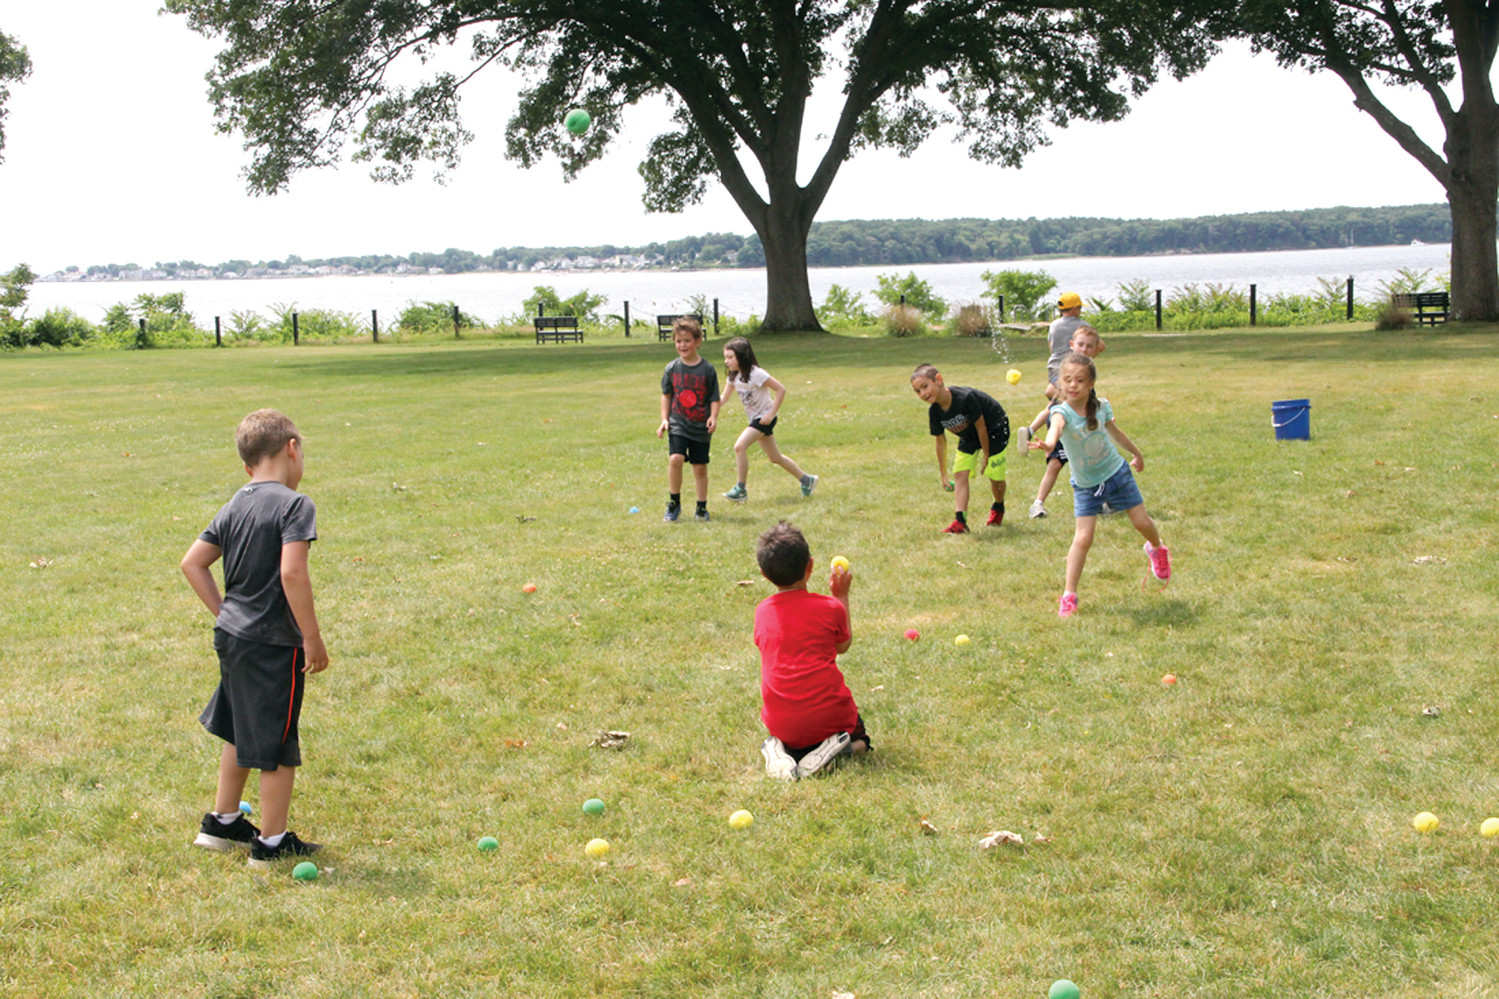 WATER FUN: At the H2O station, campers play a game by flinging sponge balls soaked in water.